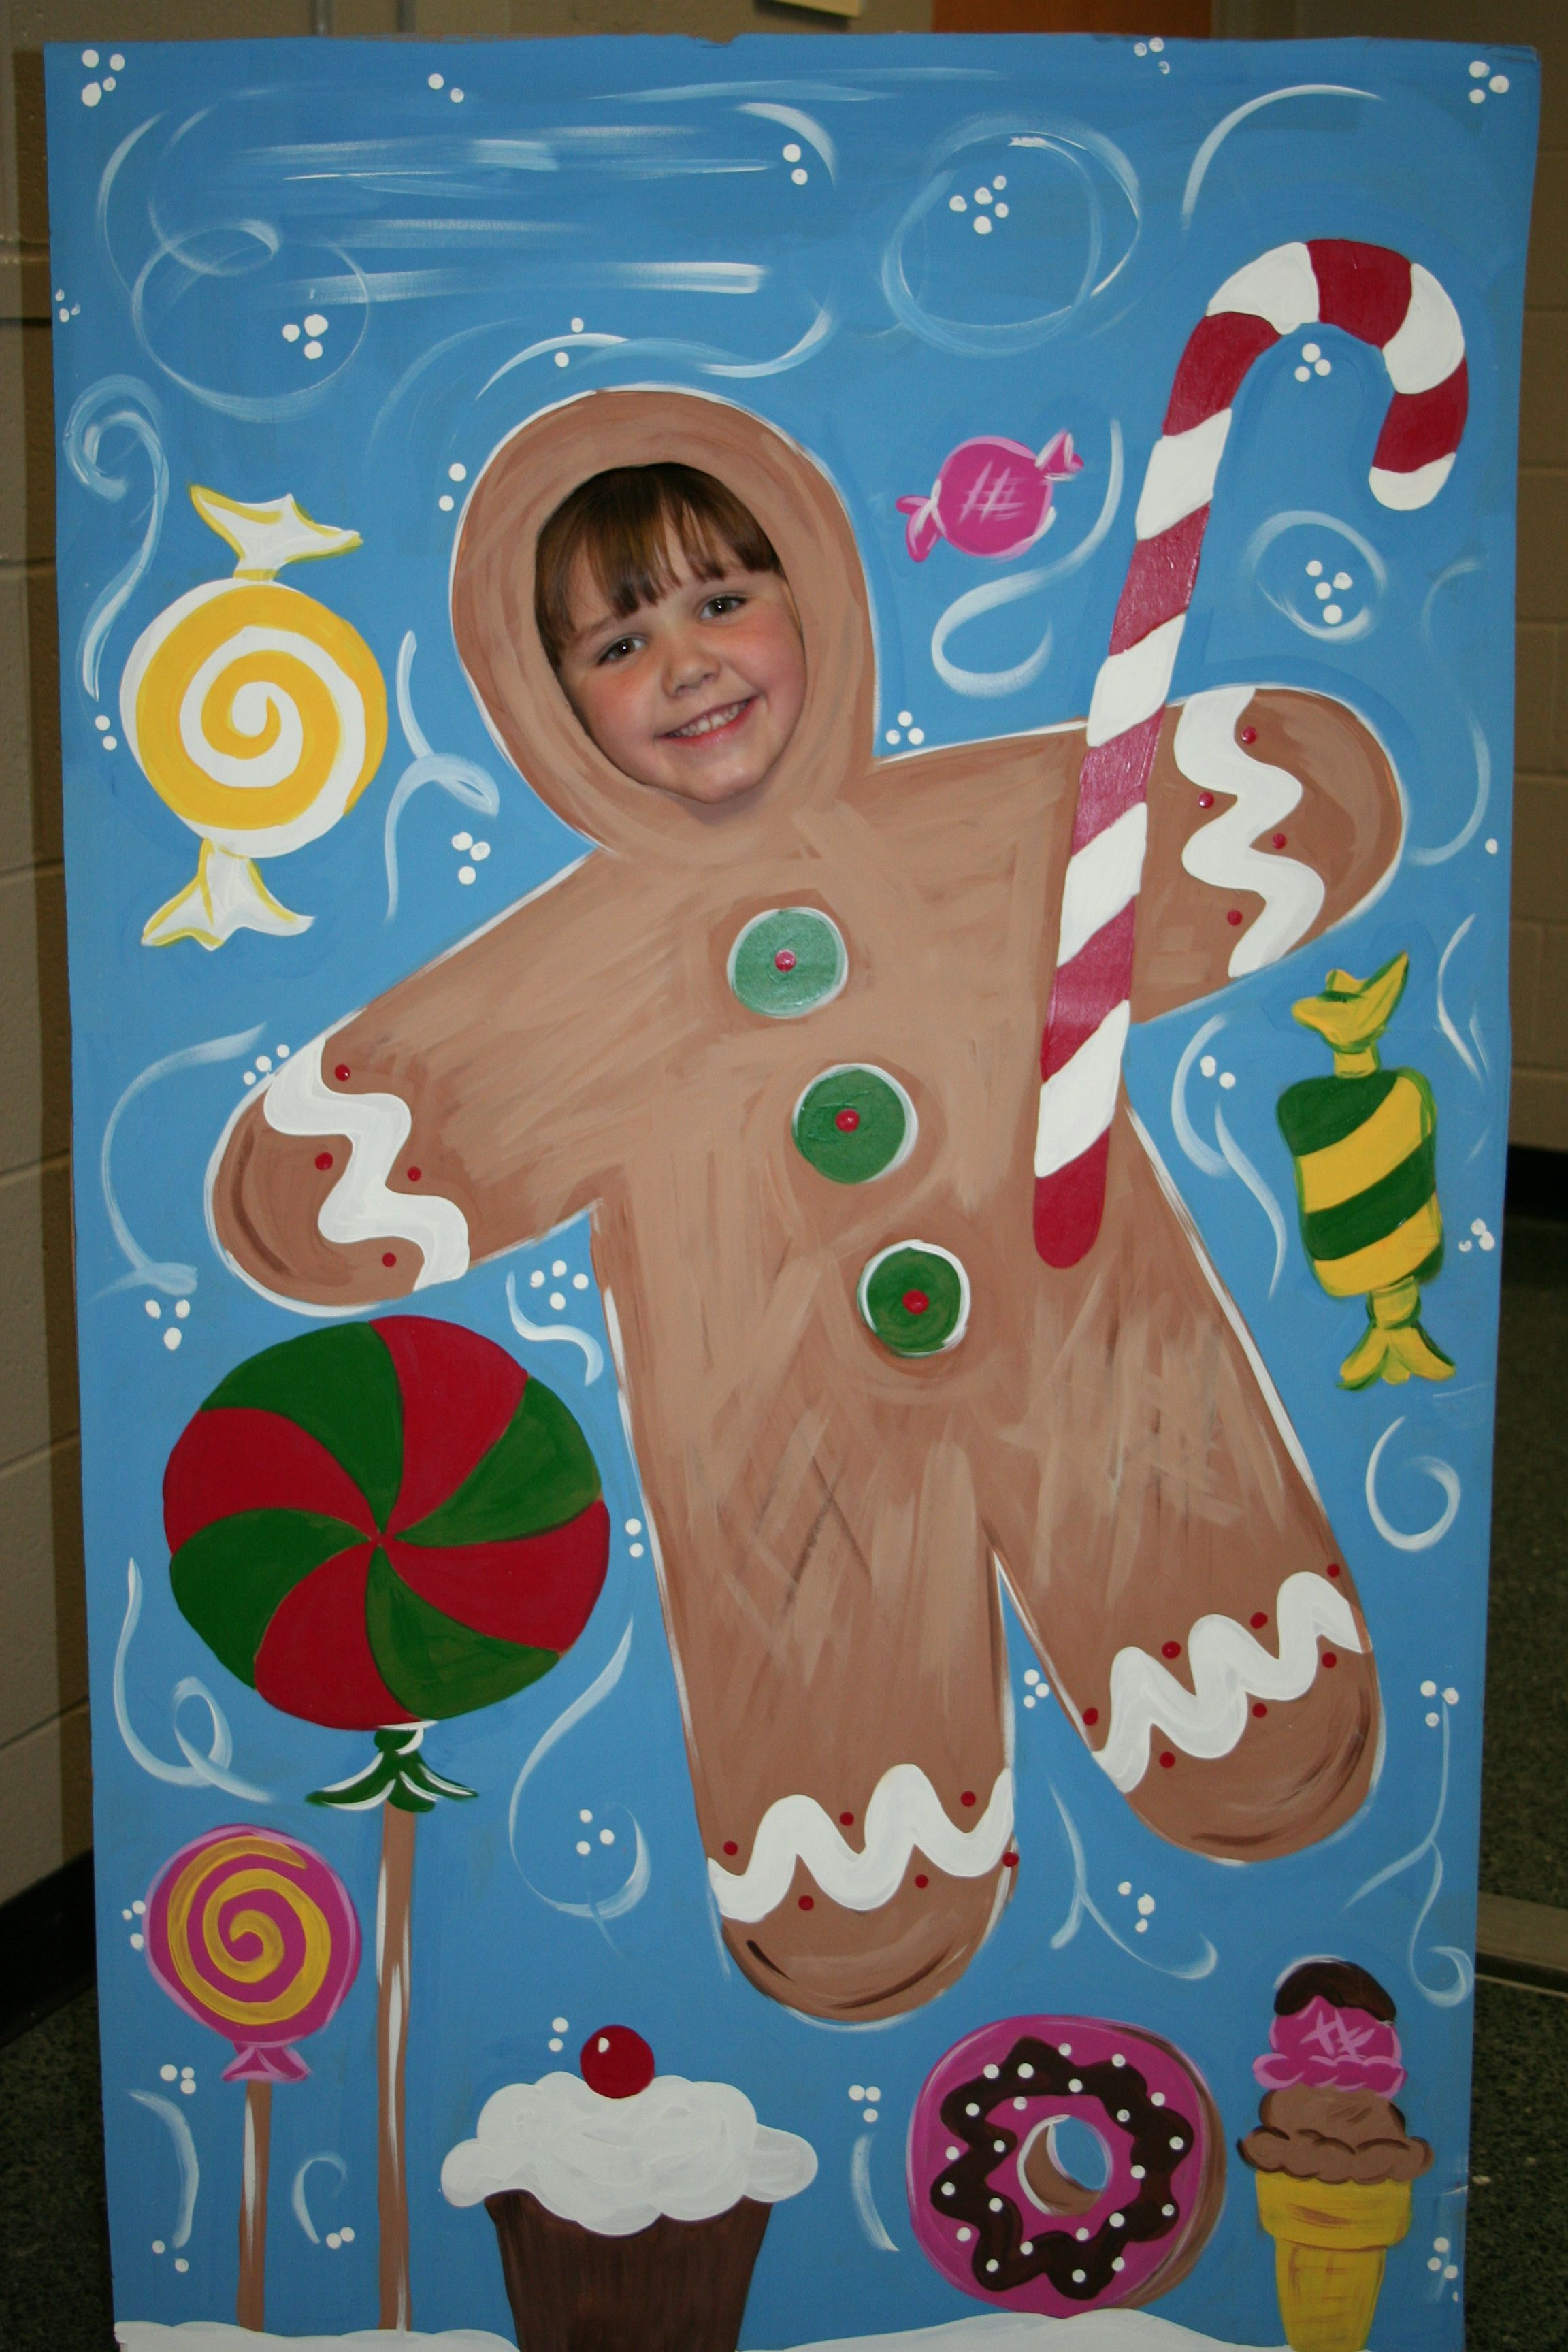 Christmas Gingerbread Man Photo Op Standee Insert Your